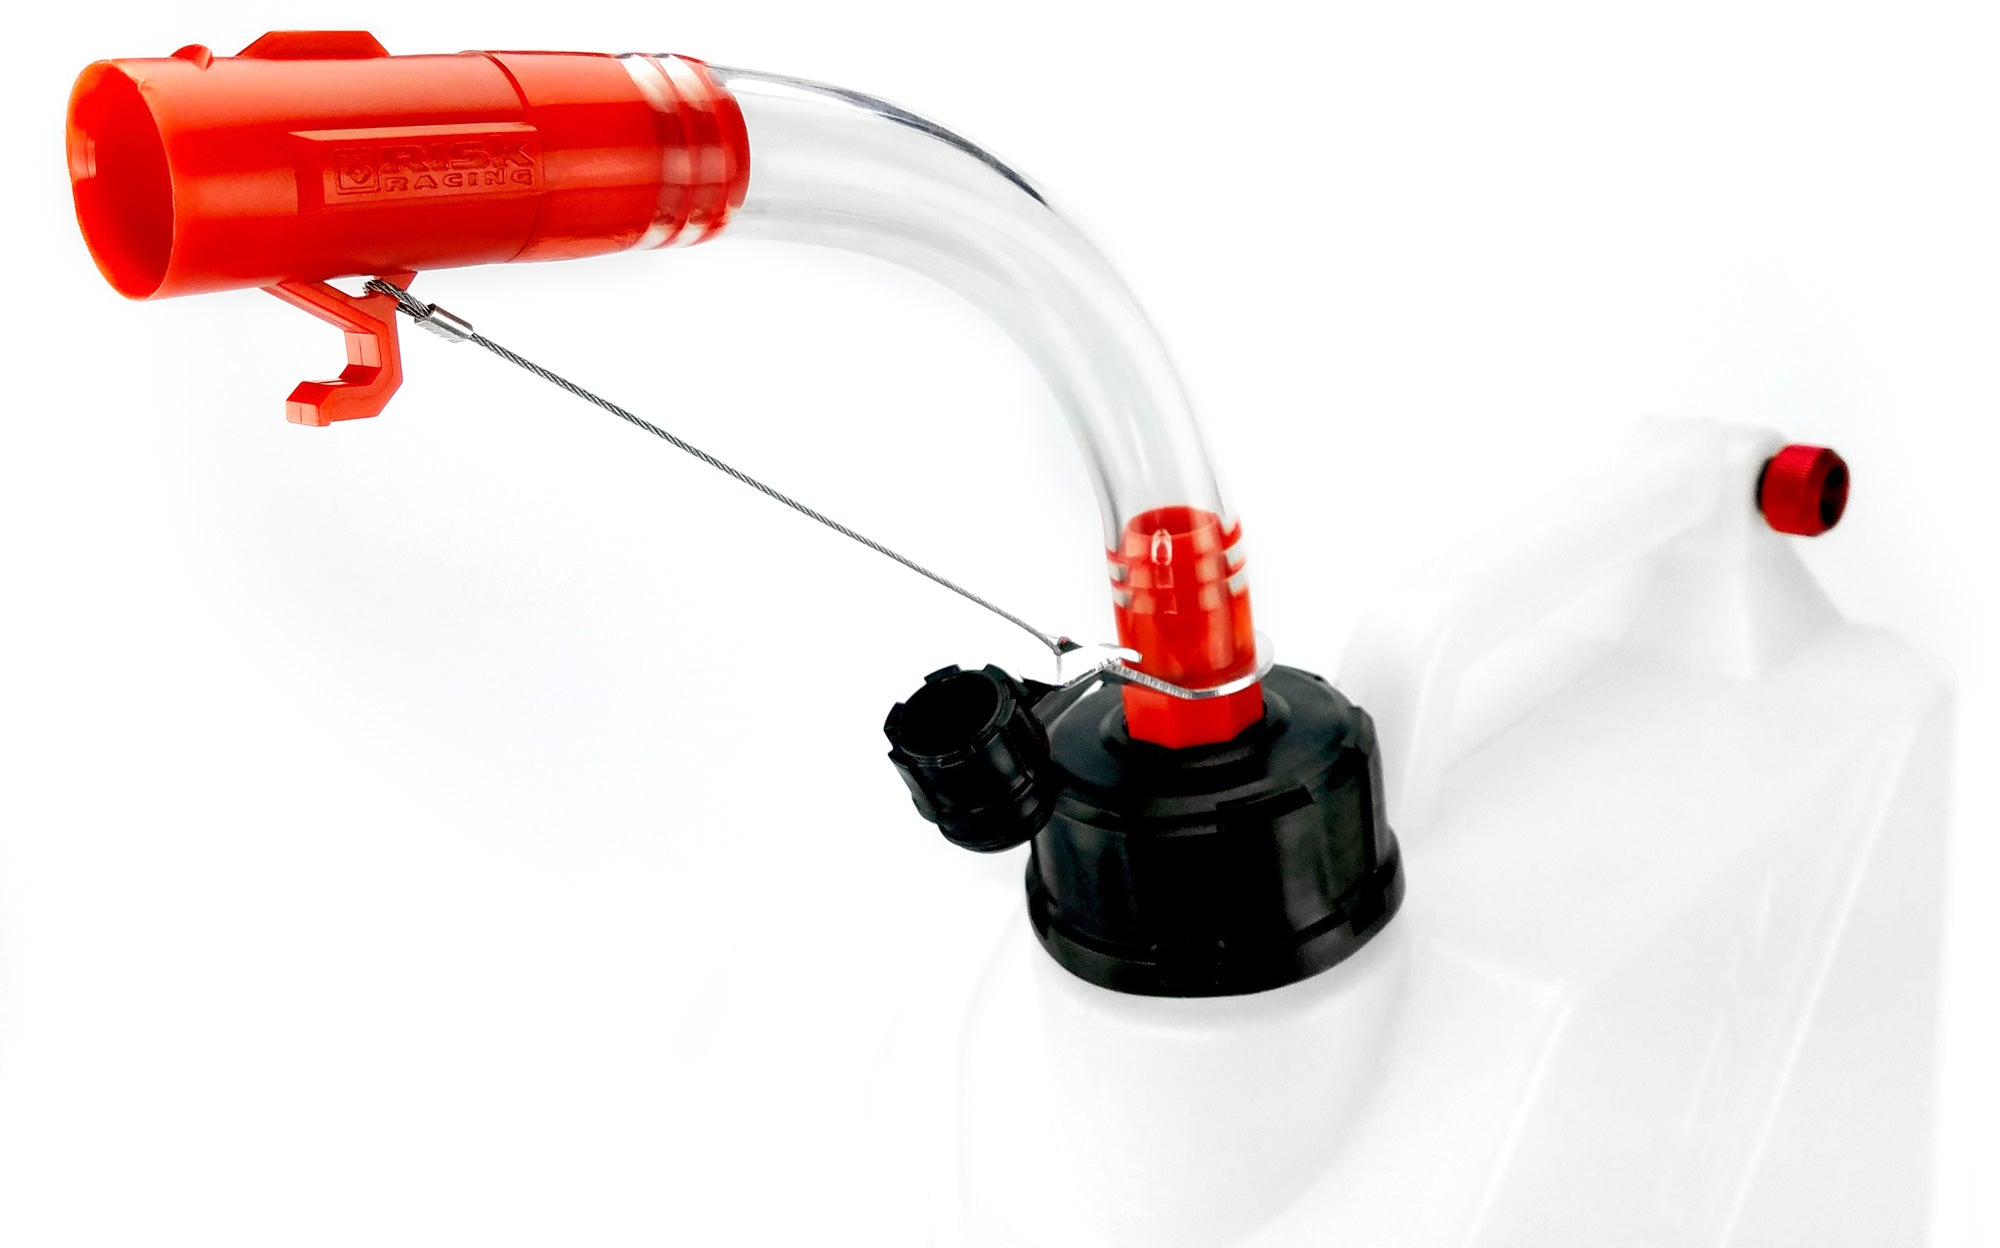 Hose Bender reduces spilling